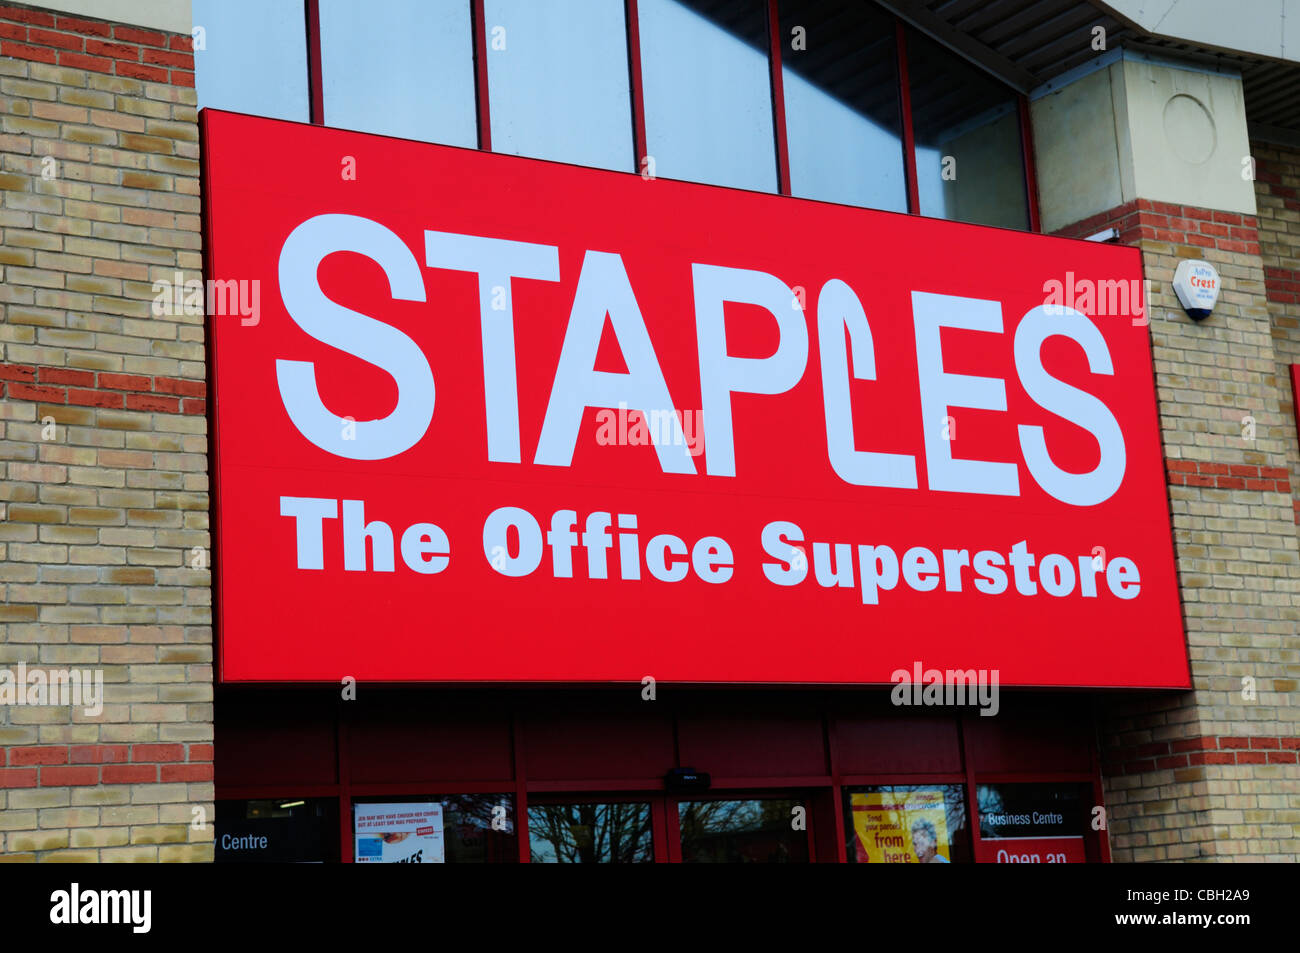 Staples The Office Superstore Sign, Cambridge, England, UK - Stock Image